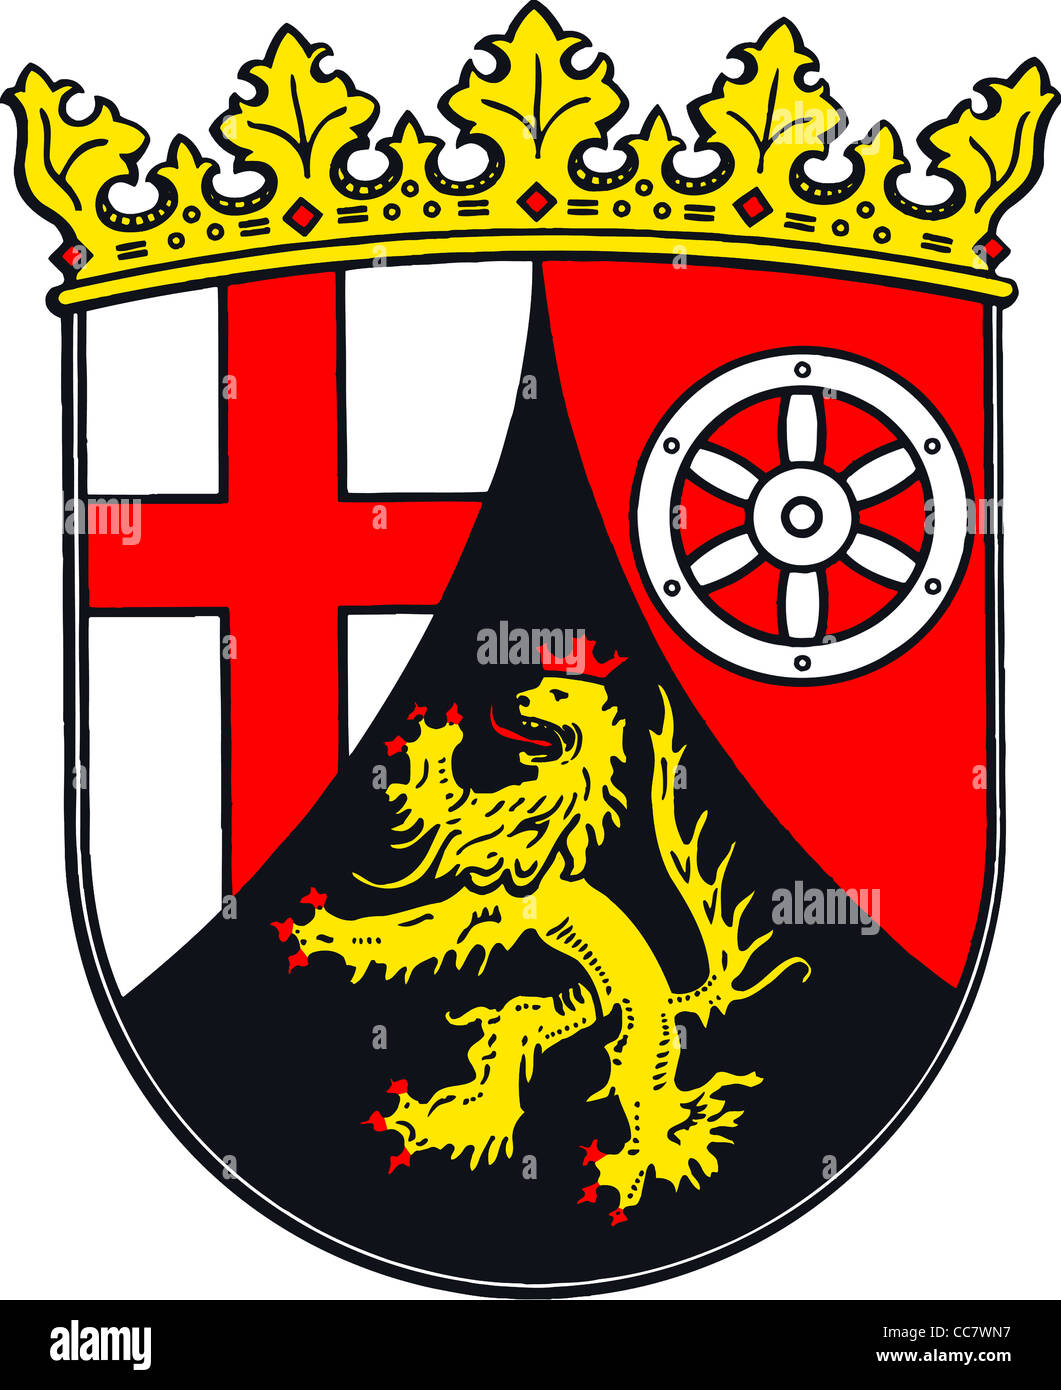 Coat of arms of the German federal state Rhineland Palatinate. - Stock Image